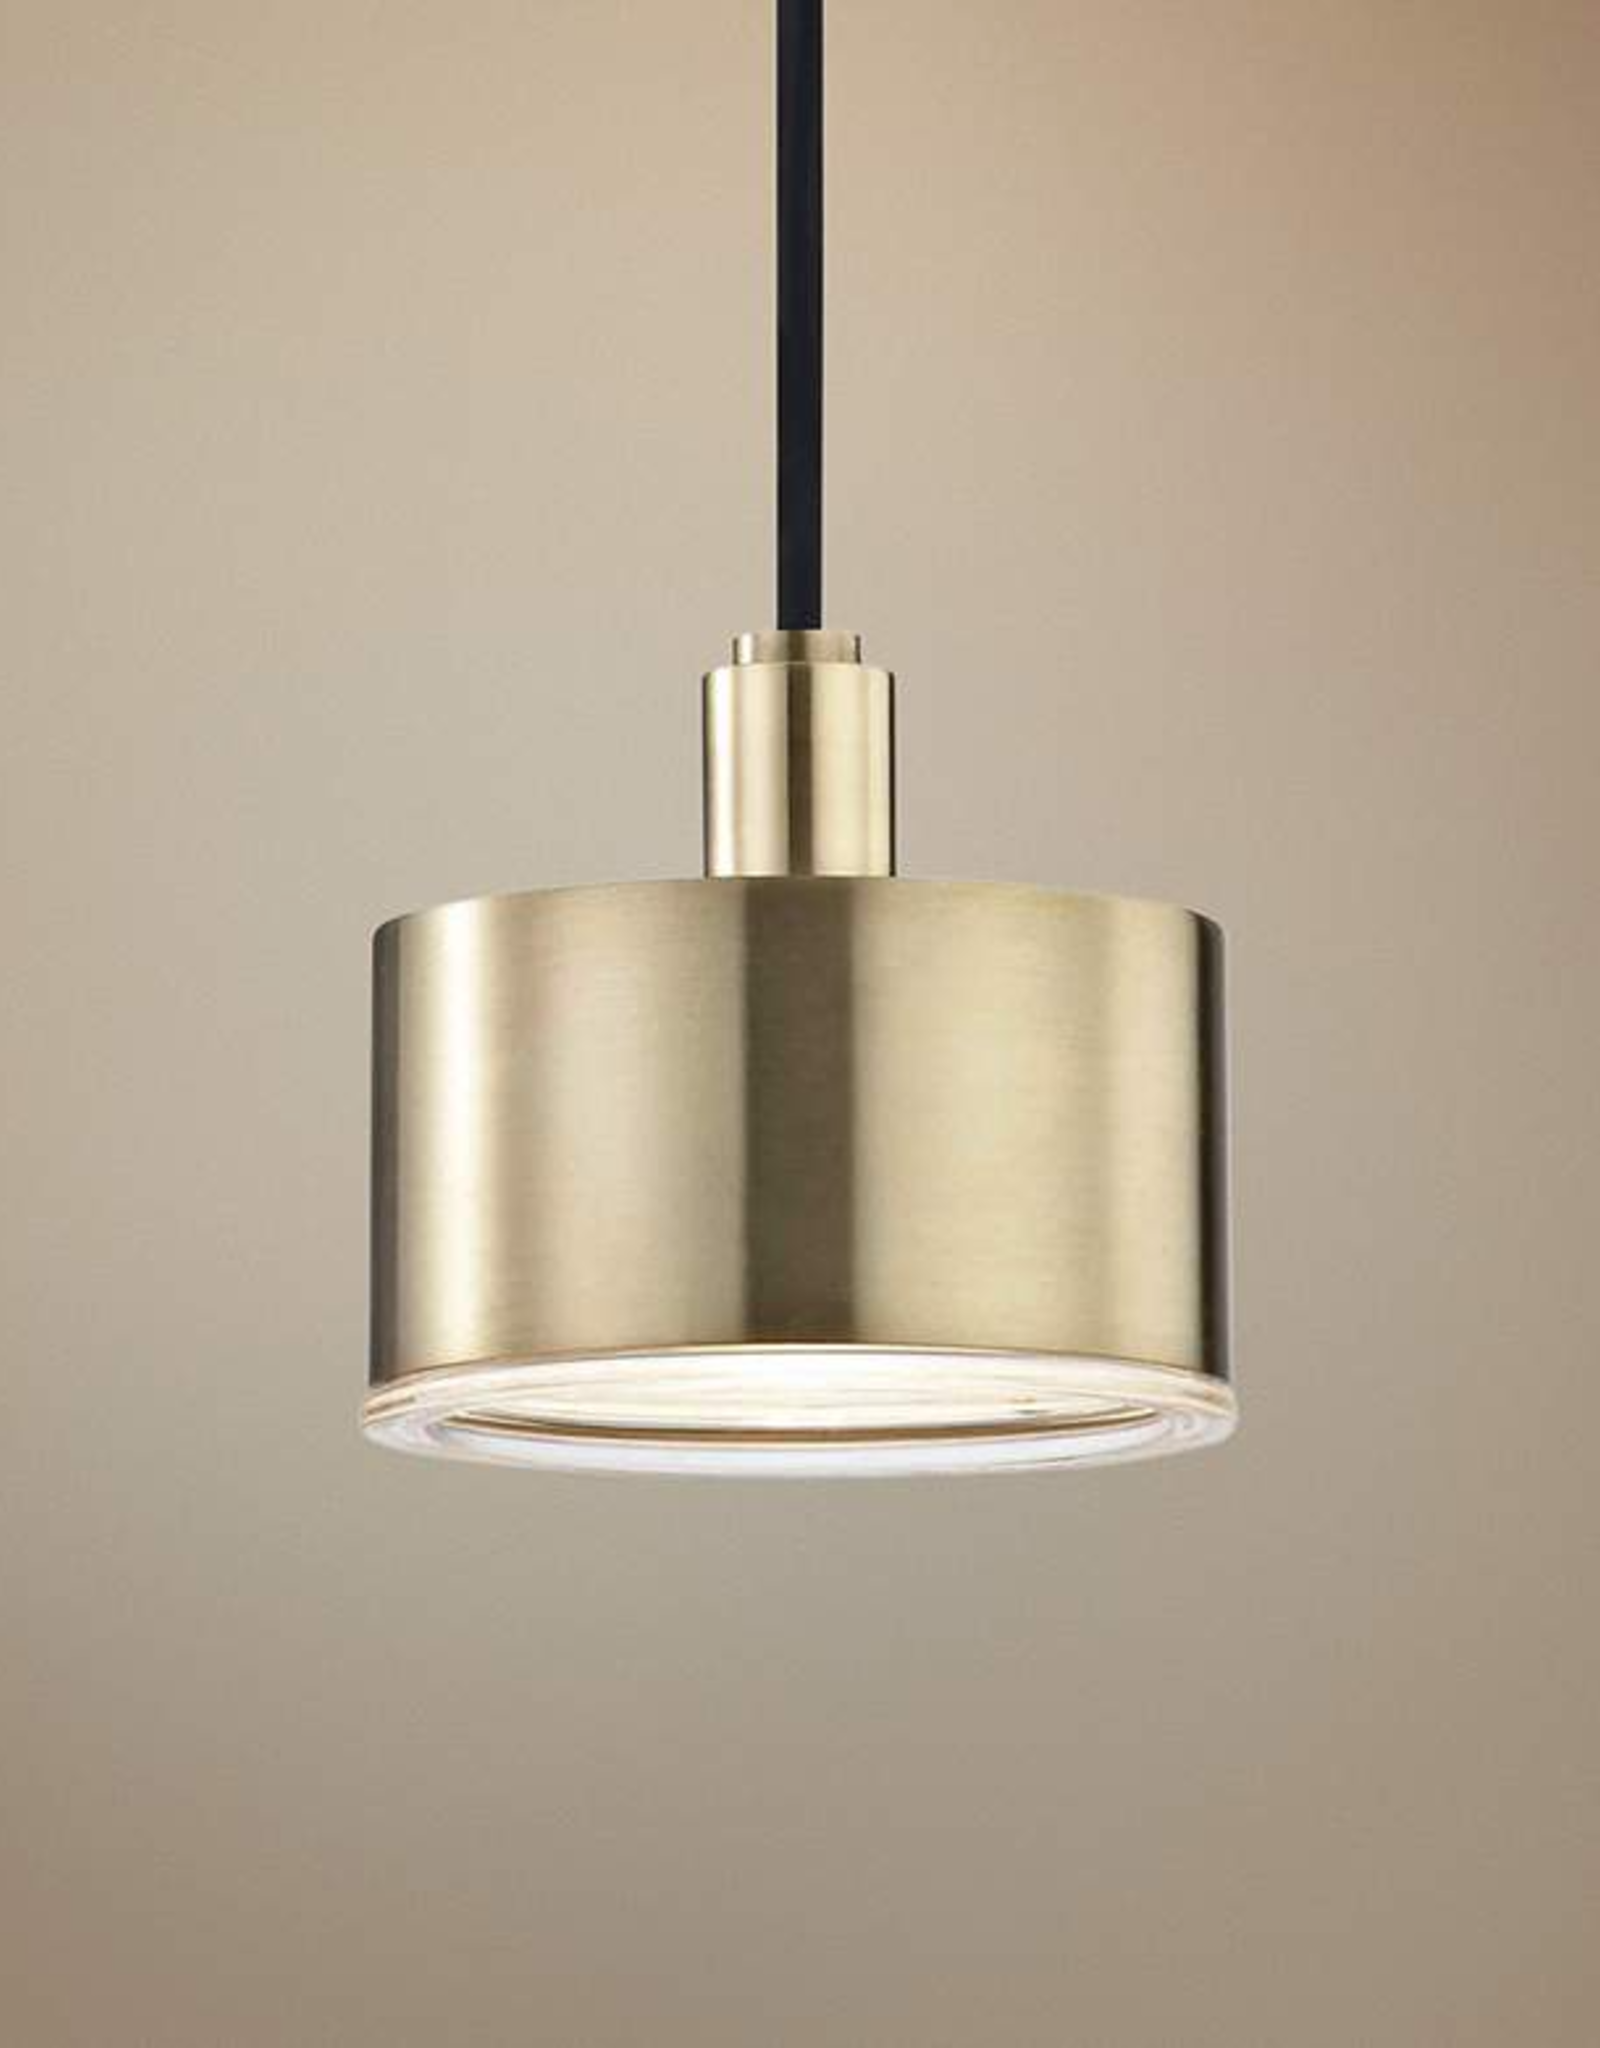 Mitzi Nora 1-Light Aged Brass LED Pendant with Clear Glass